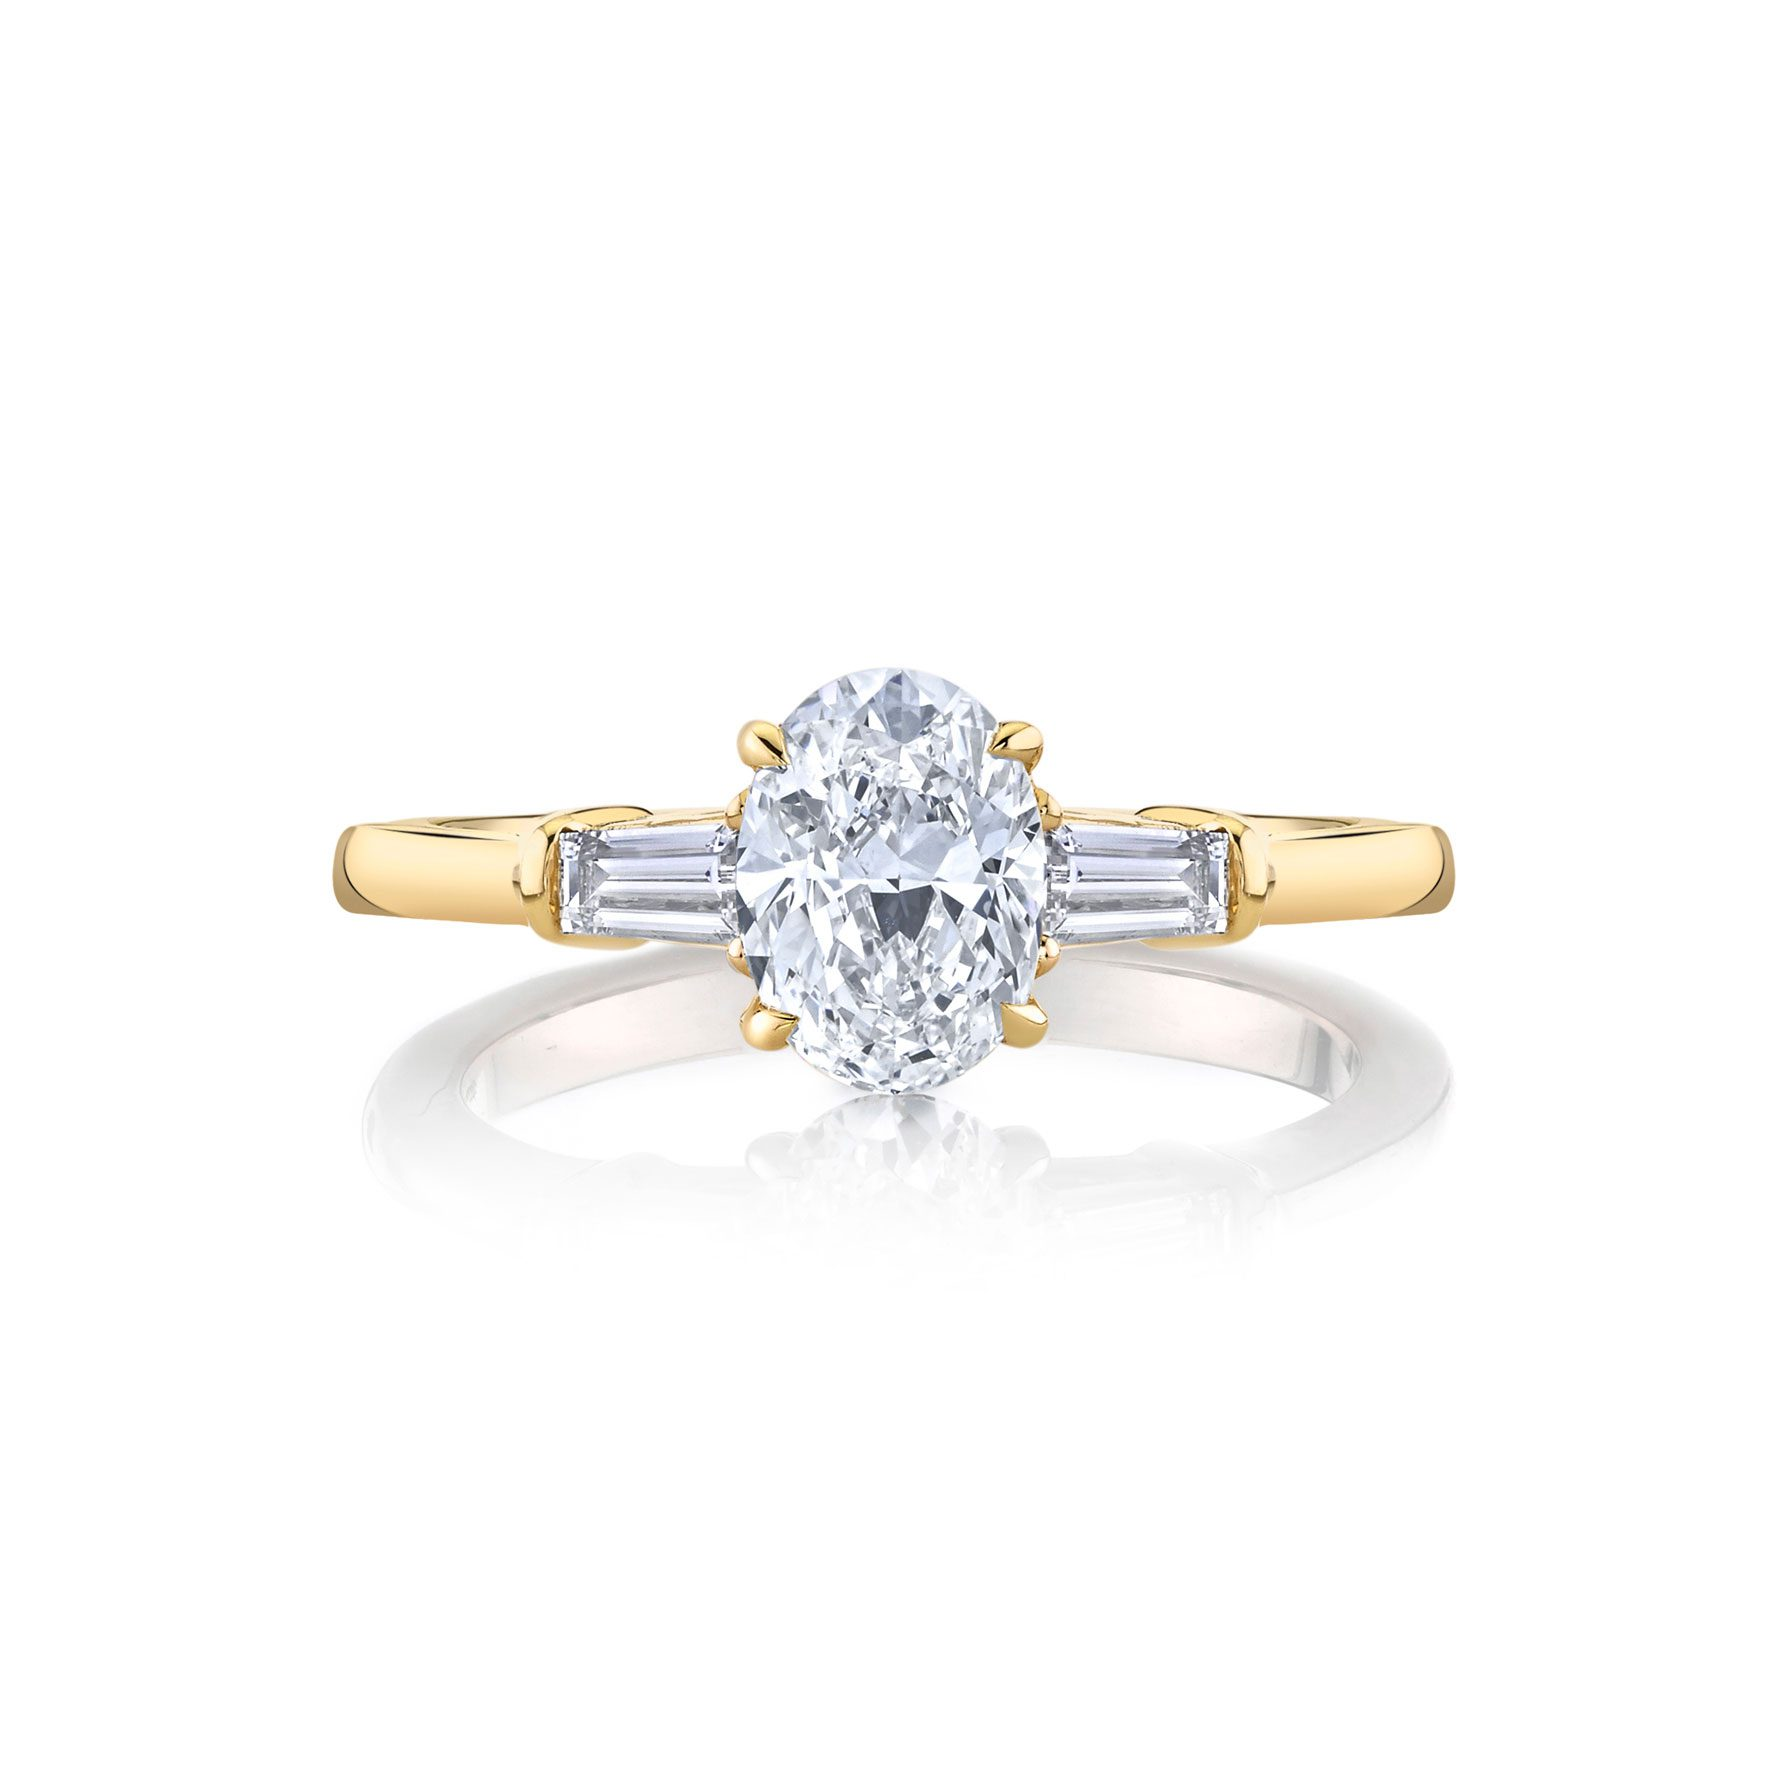 Claire Oval Three Stone Engagement Ring with tapered baguette diamond side stones in 18k Yellow Gold Front View by Oui by Jean Dousset